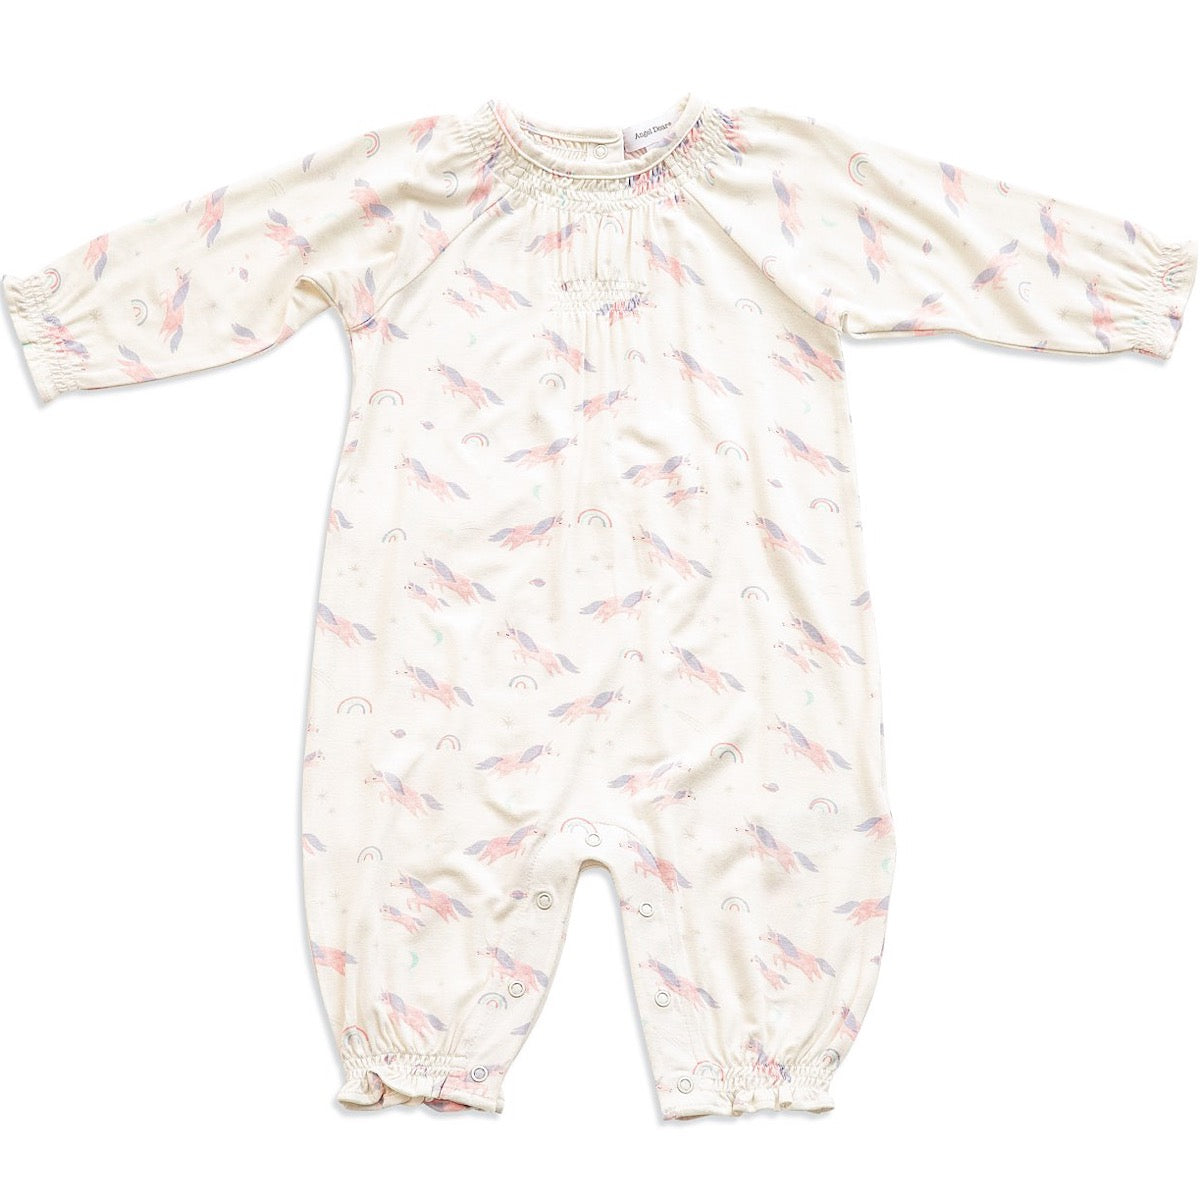 Cosmic Unicorn Smocked Romper